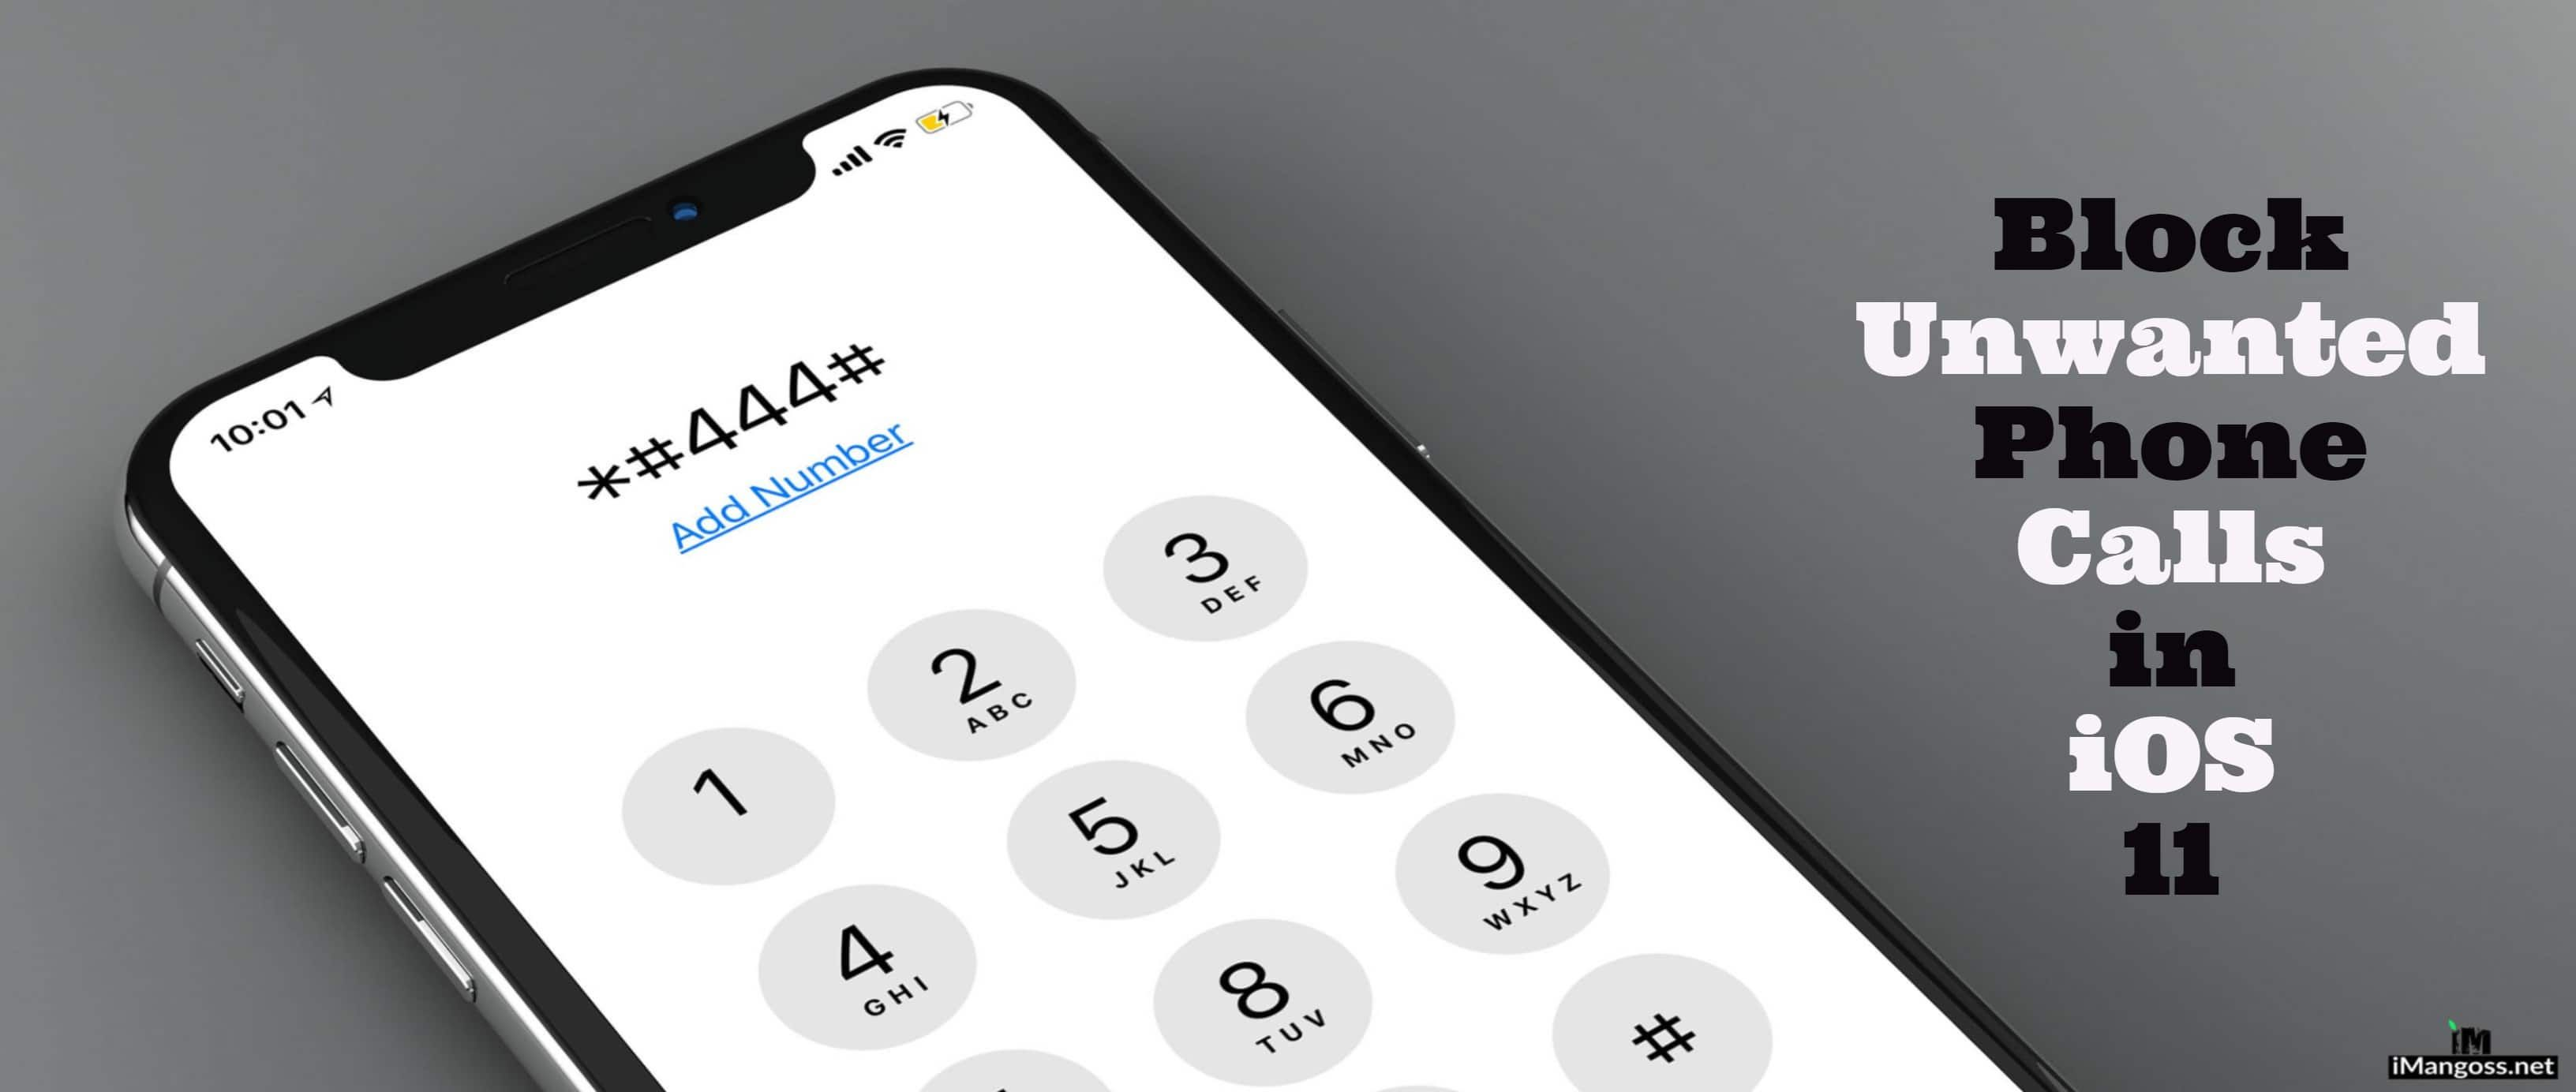 How to block unwanted phone calls in ios 11 ios 11